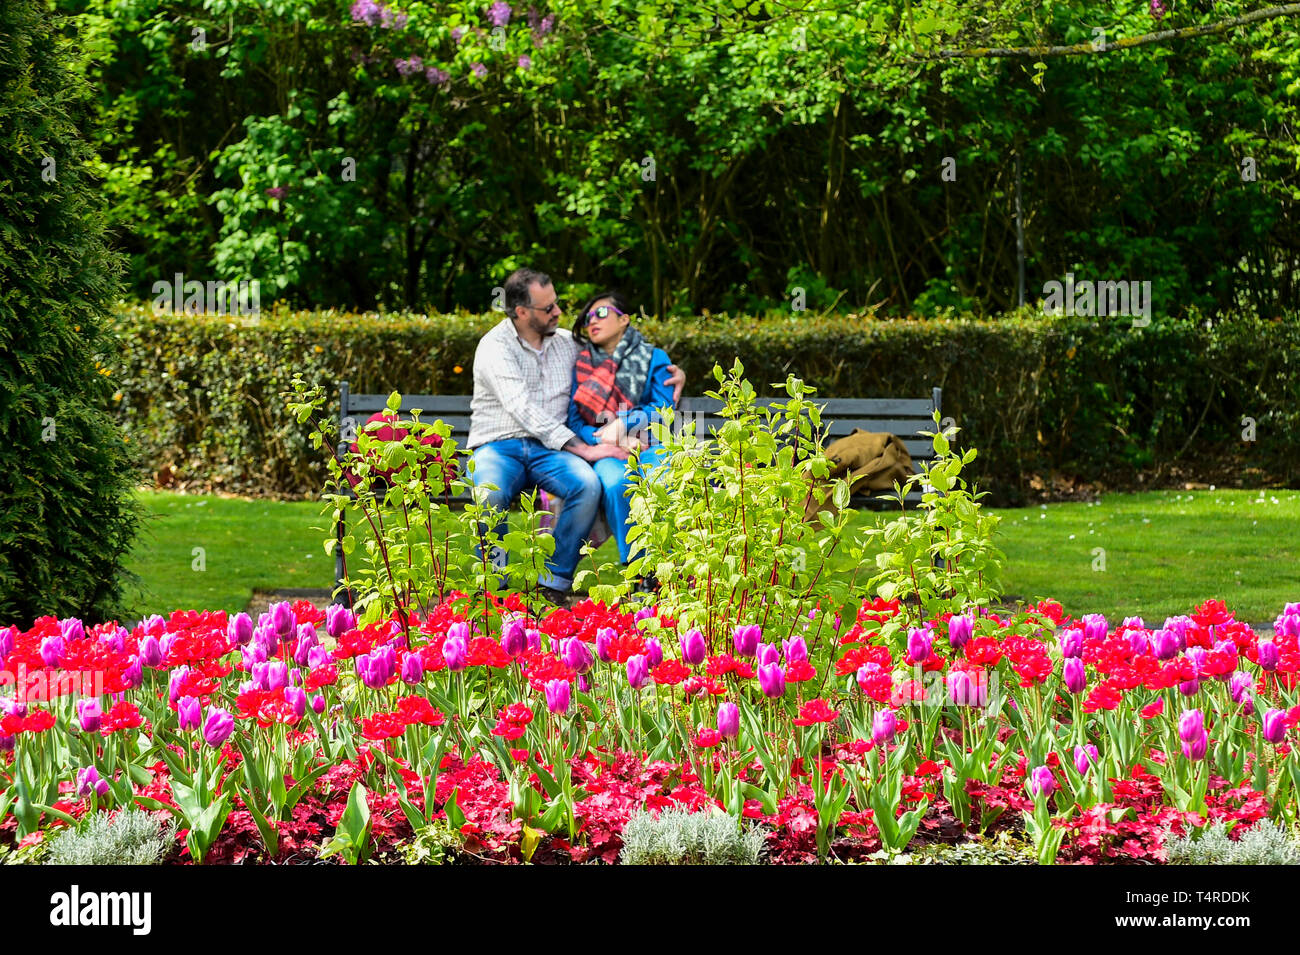 London, UK  18th Apr, 2019  UK Weather: A couple sits on a